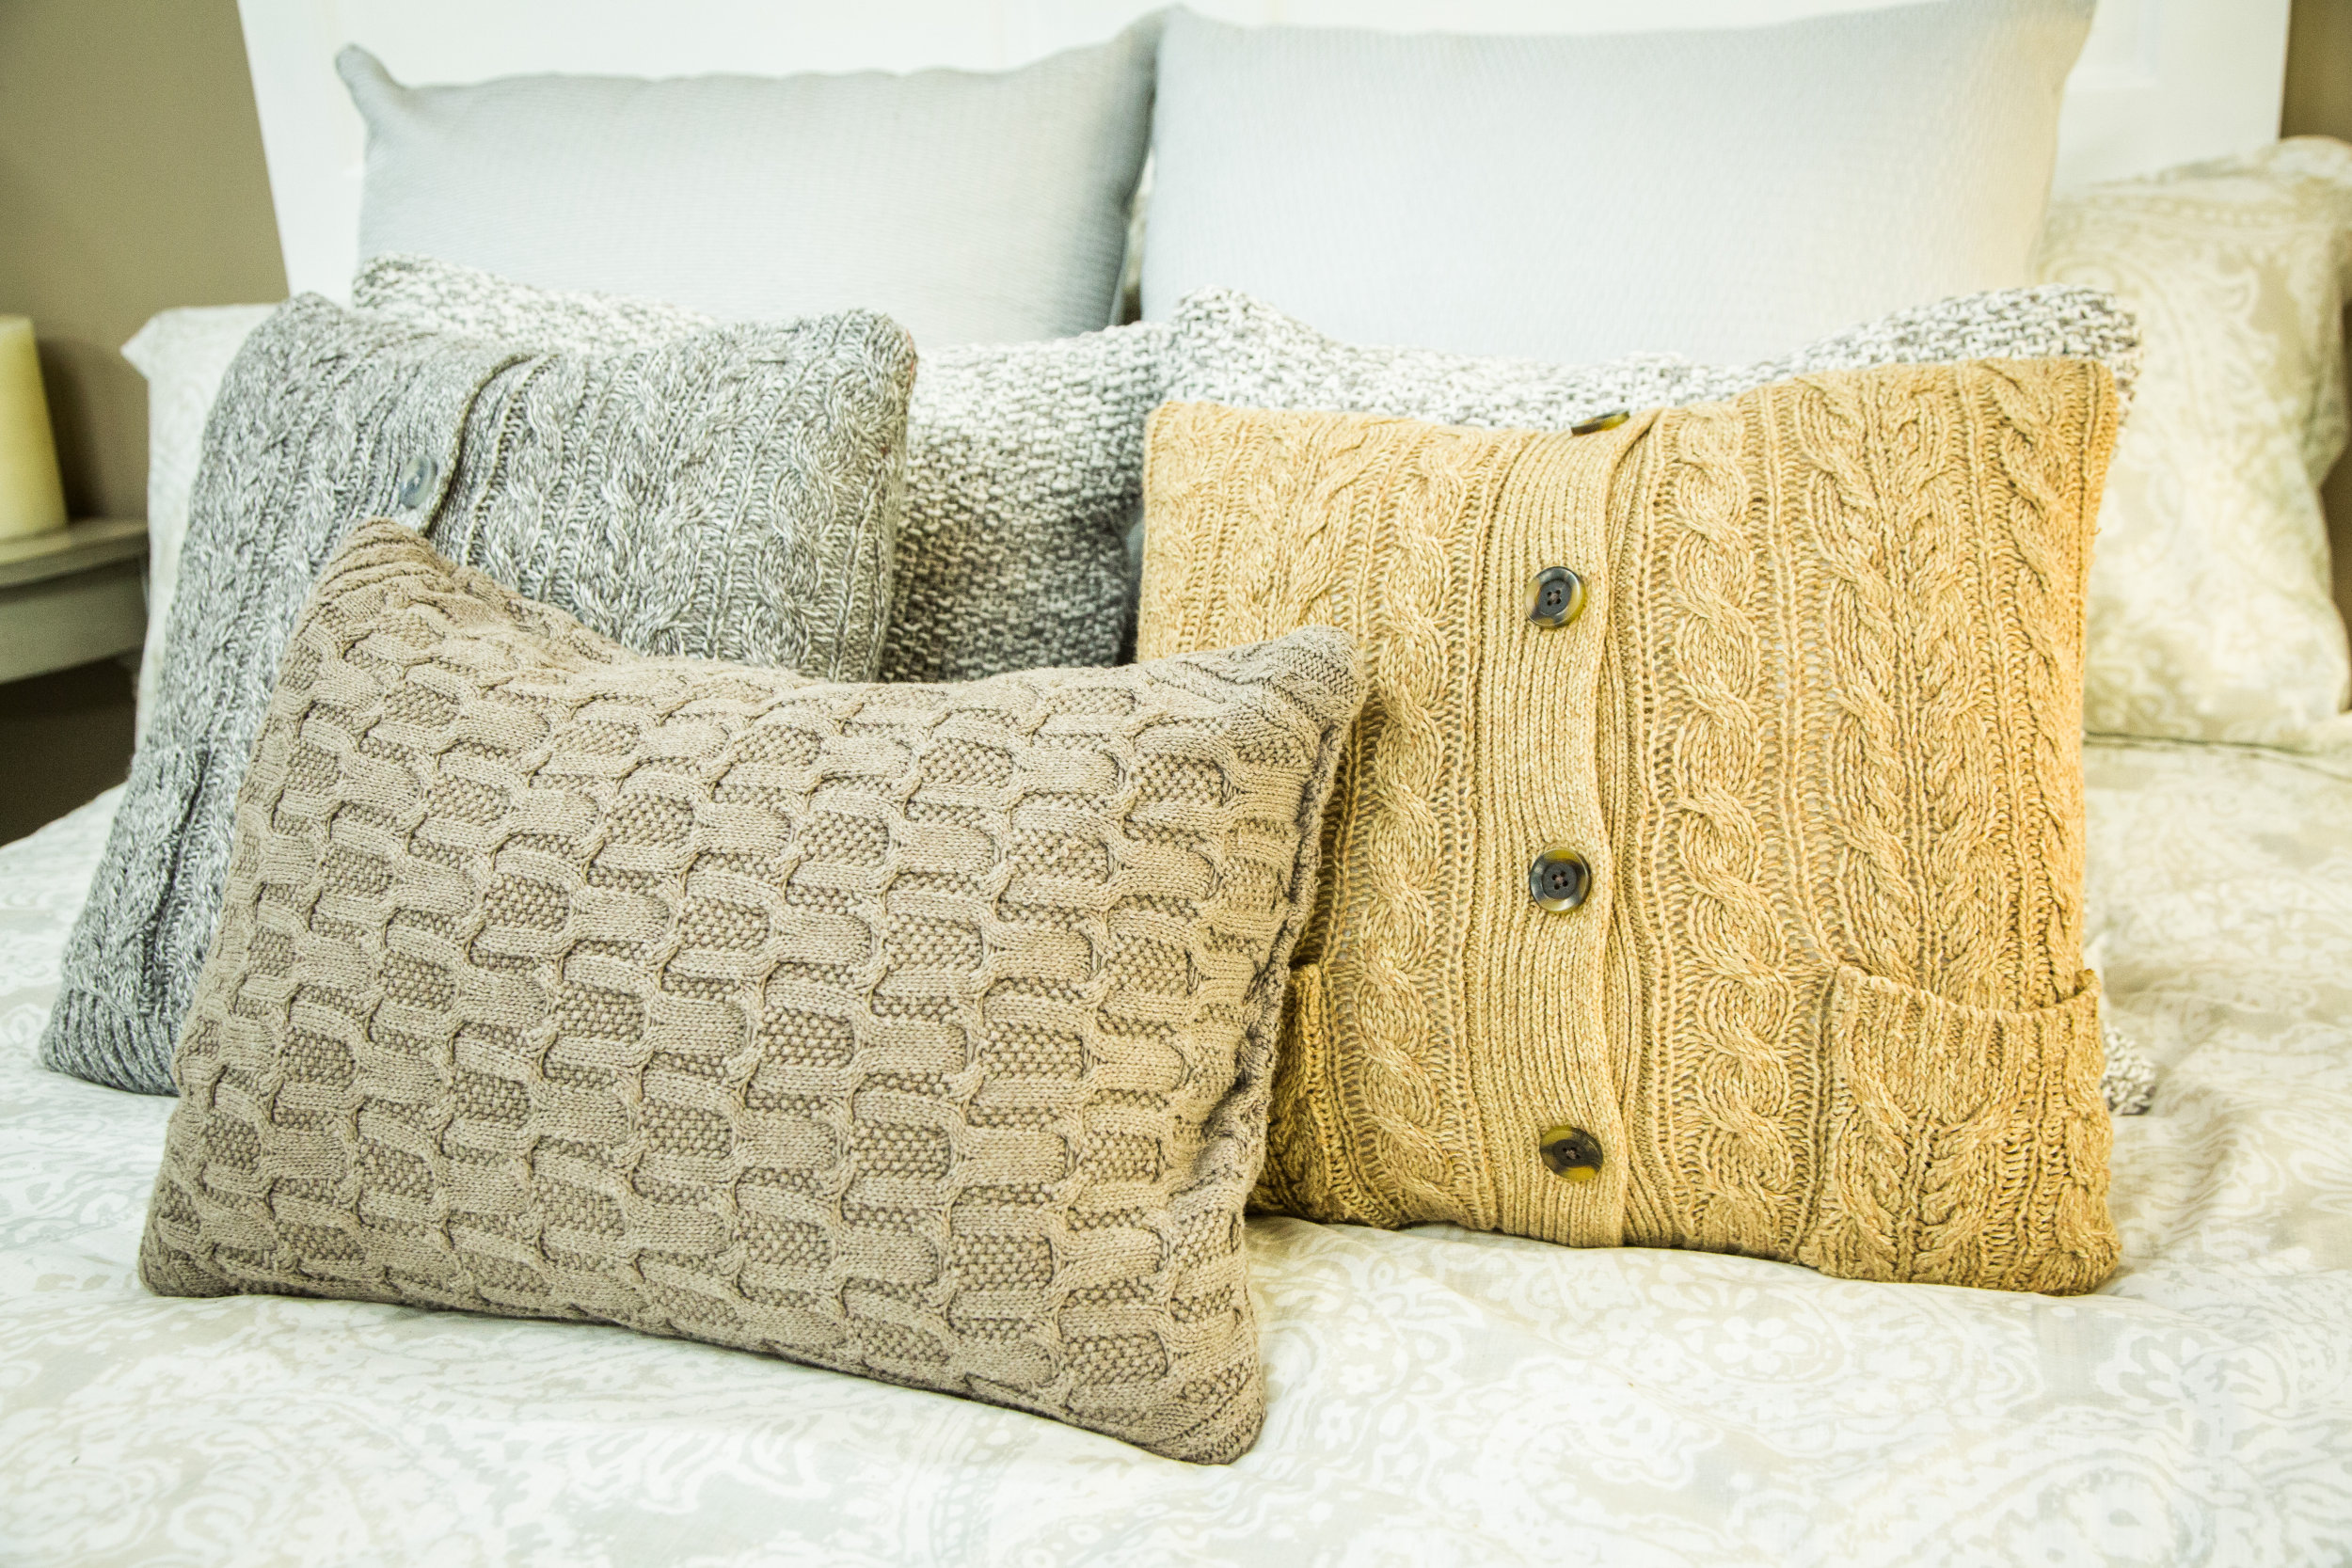 luten on covers hawkins ny cover shop ebef family stonewashed picture decor home x pillows rocky pillow products linen